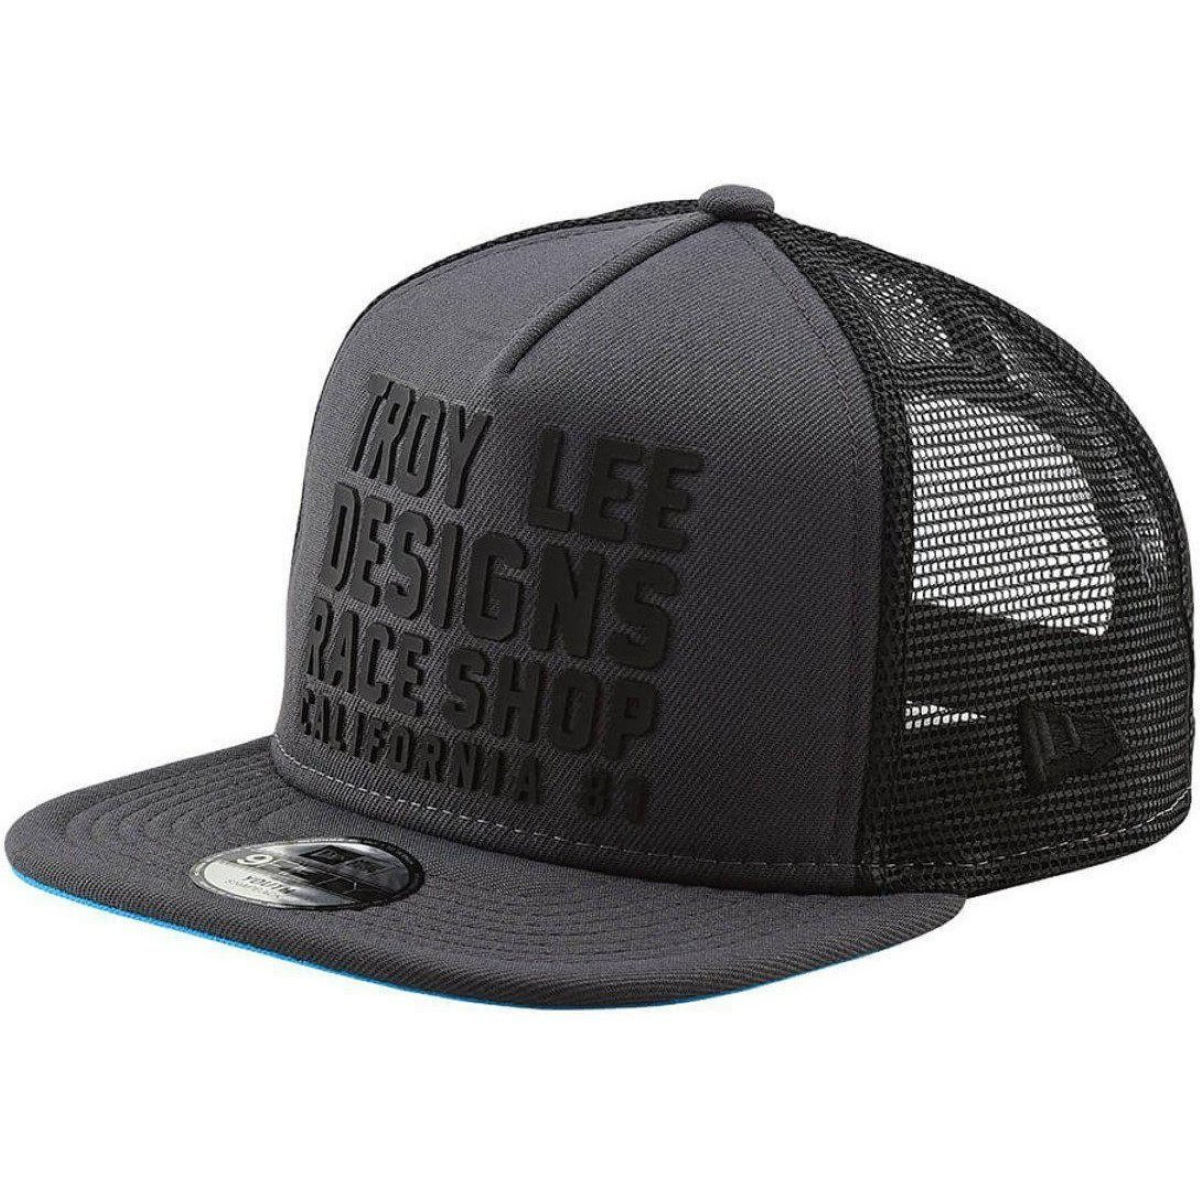 ComprarTroy Lee Designs Youth Cali Snapback - Gorras